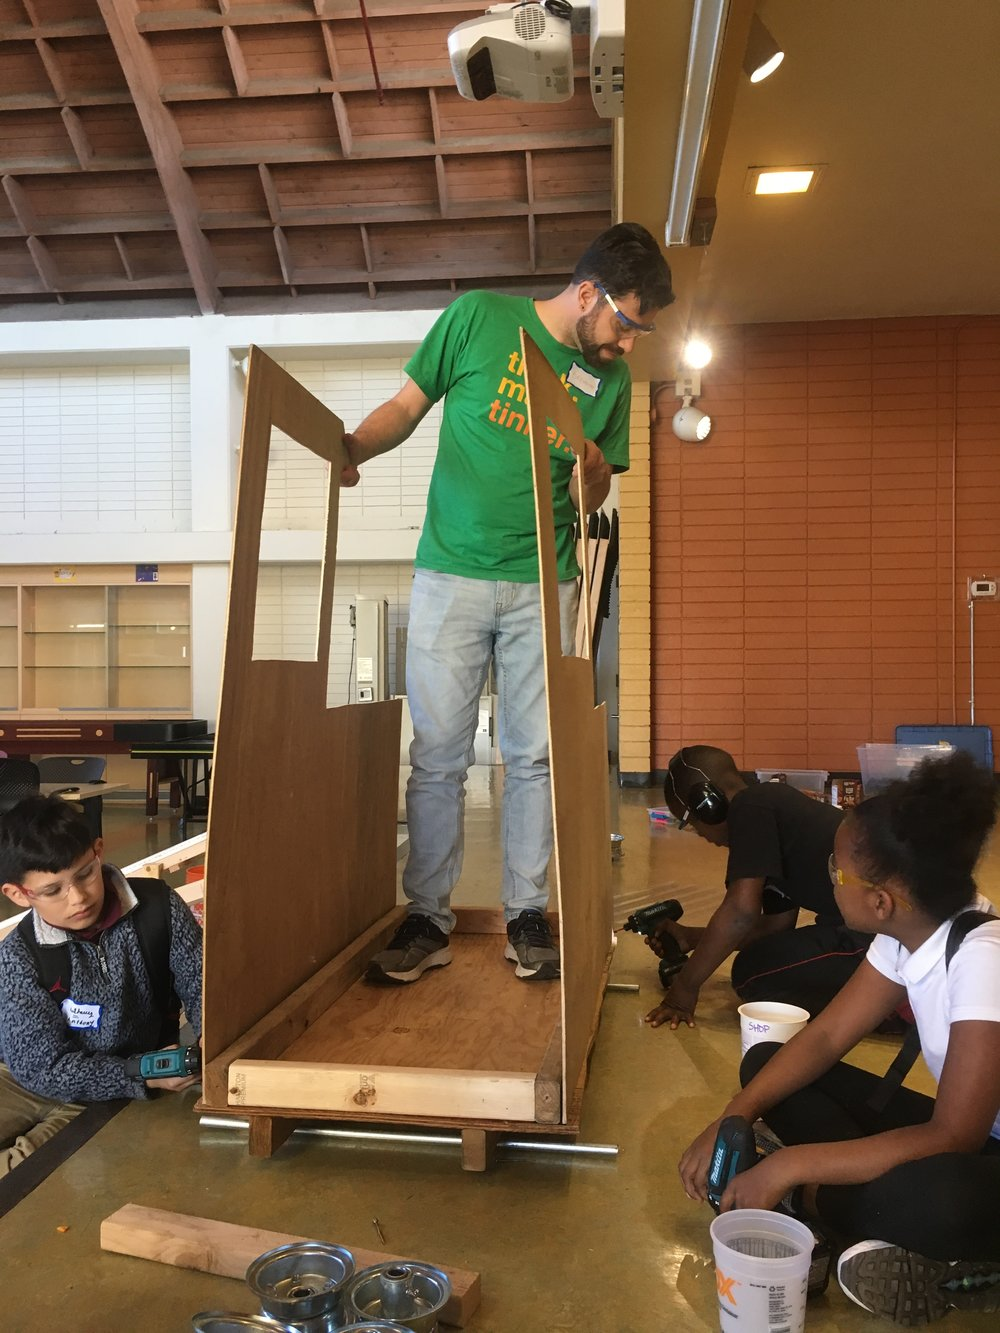 The train car is coming together! The whole group works on it together while Brendon holds the sides in place.